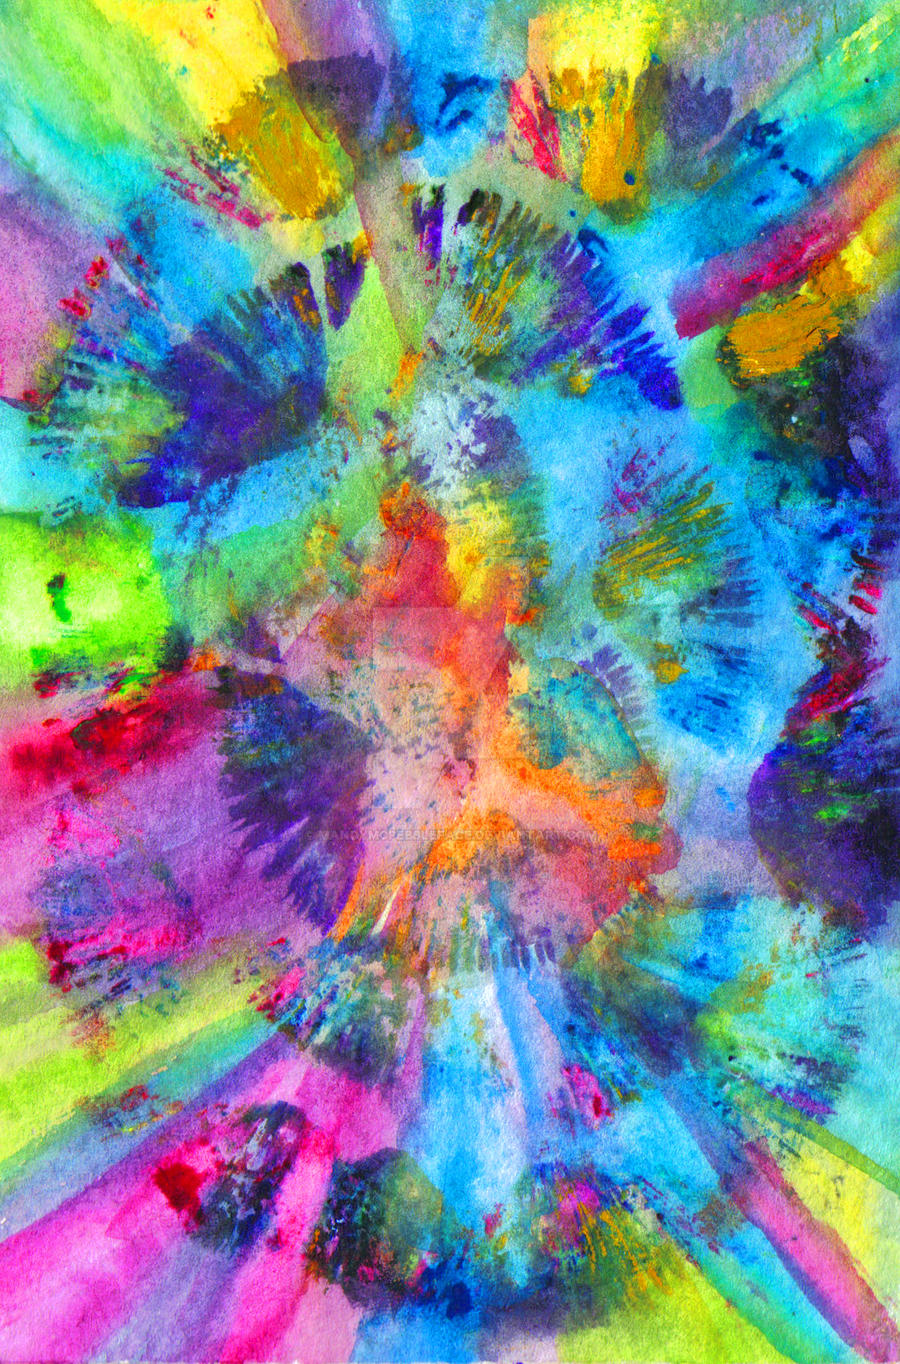 Abstract Tie-Dye Egg by MandyMcPebbleFace